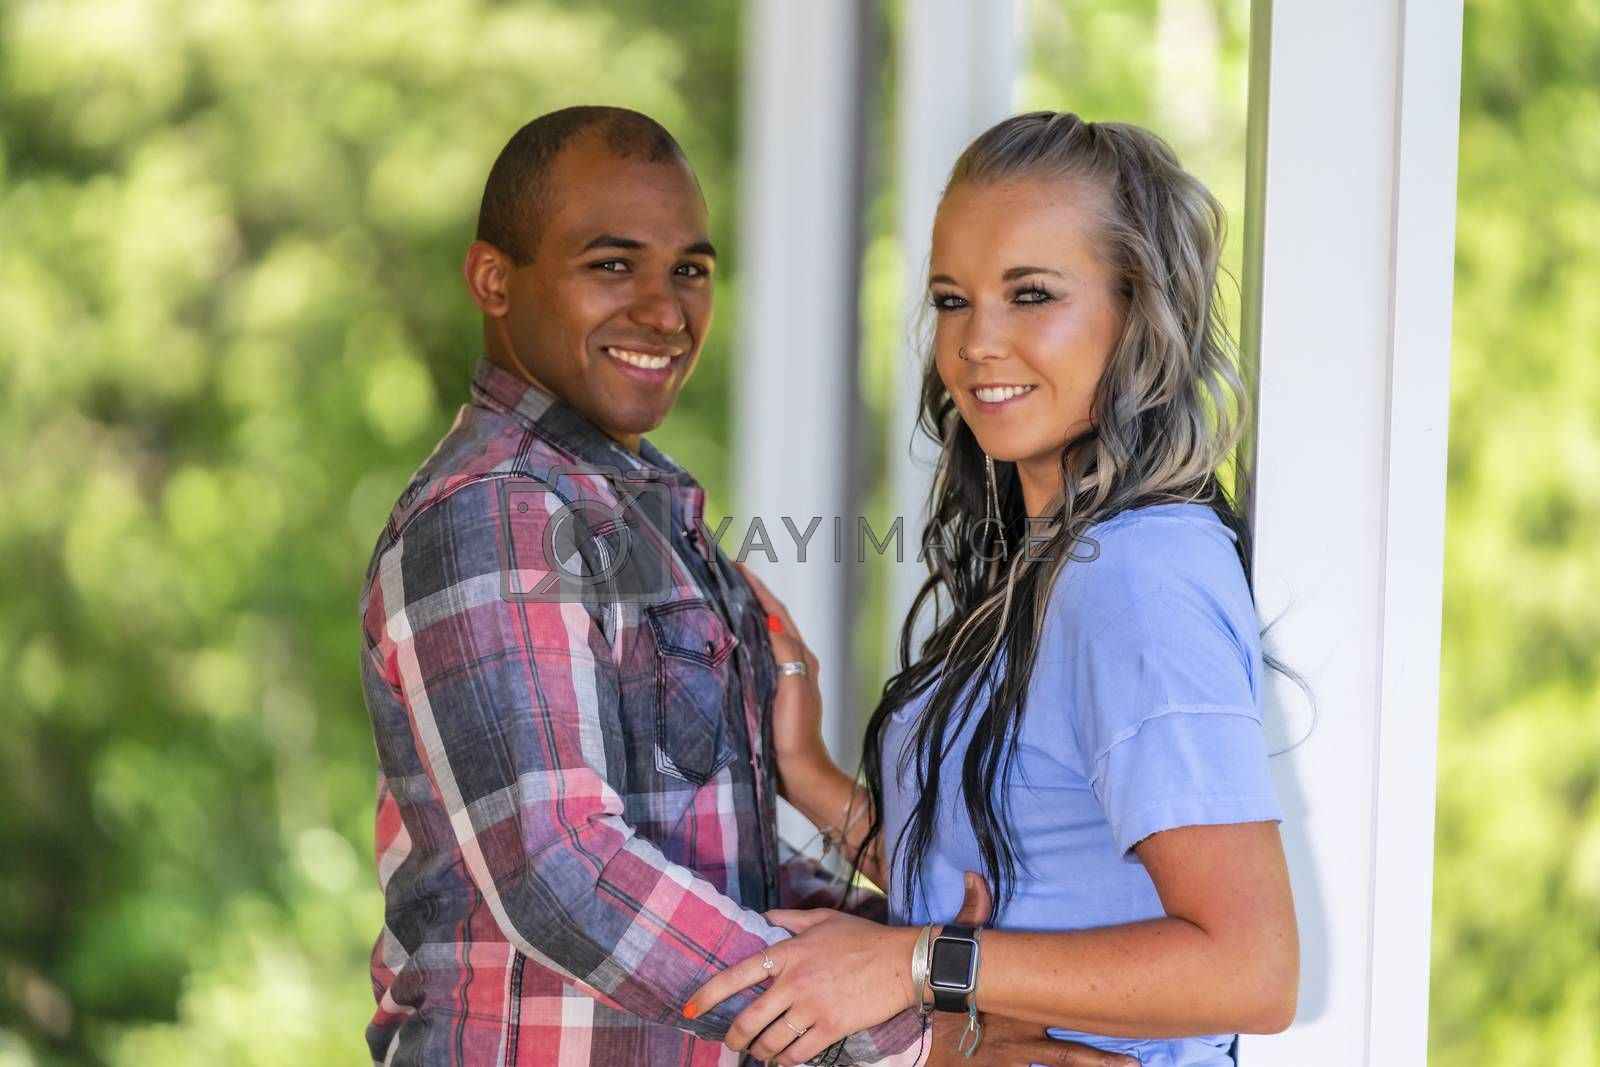 An interracial couple enjoying each others company on a summers day